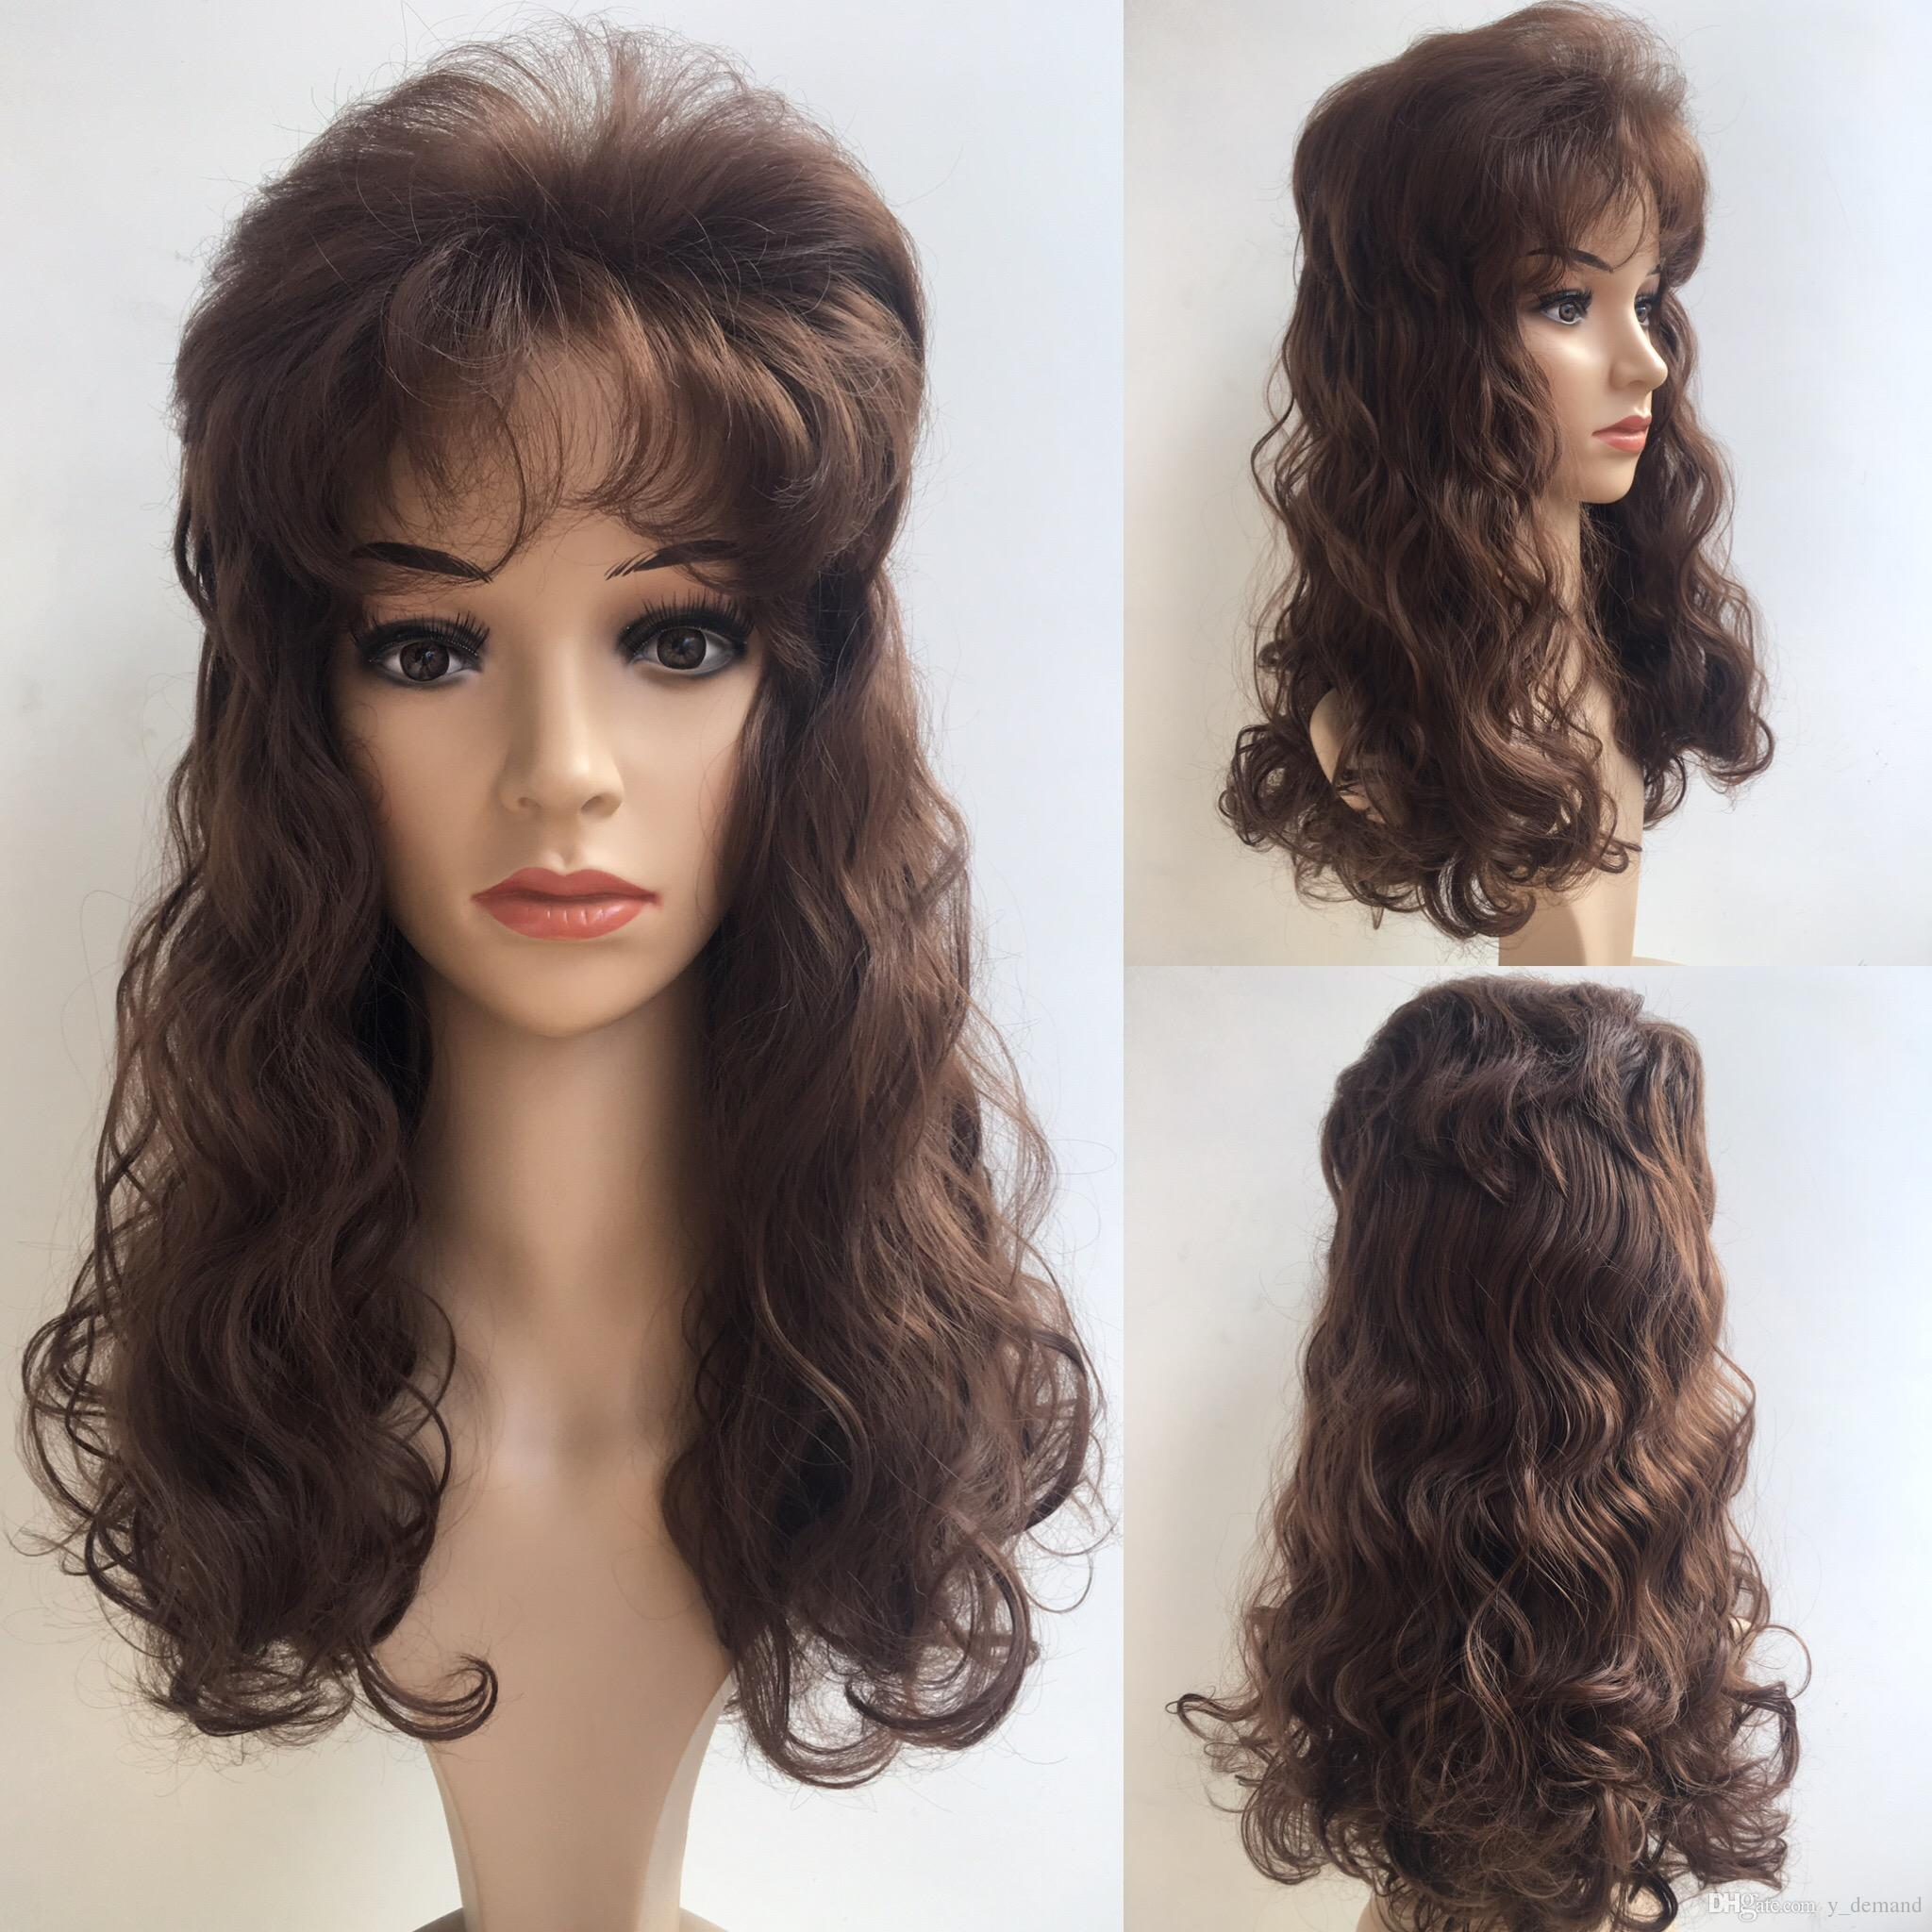 Women Fashion Charming Long Curly Wig Hair Weave Wigs Style Full